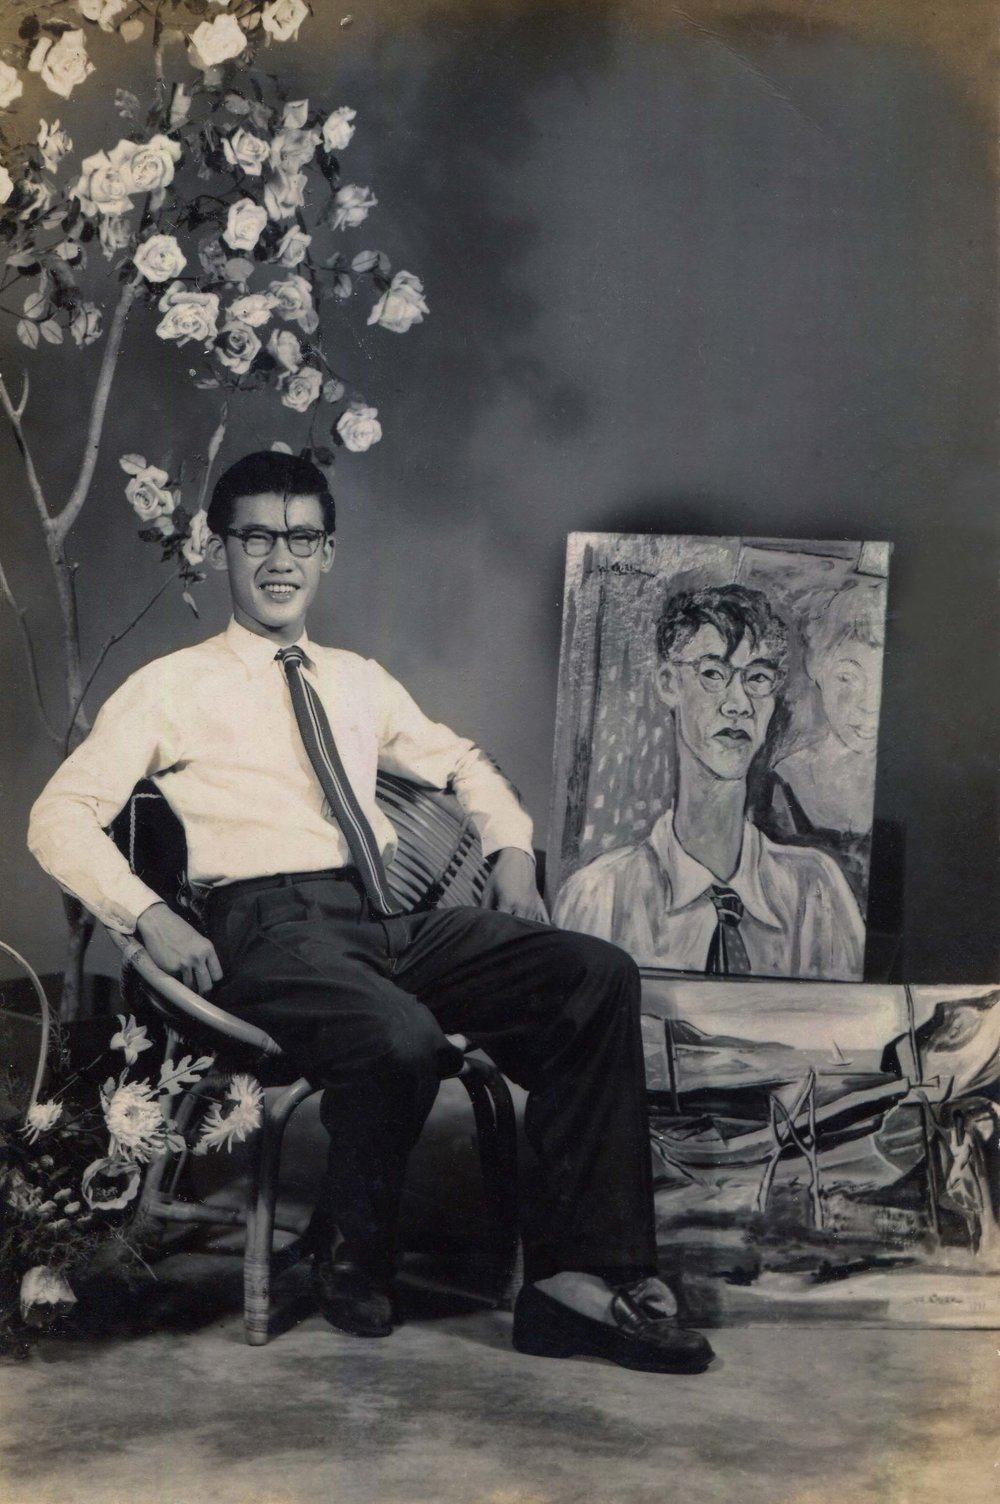 Archival photograph from Chia Yu Chian's family collection showing the artist with his self portrait. Image courtesy of ILHAM Gallery.